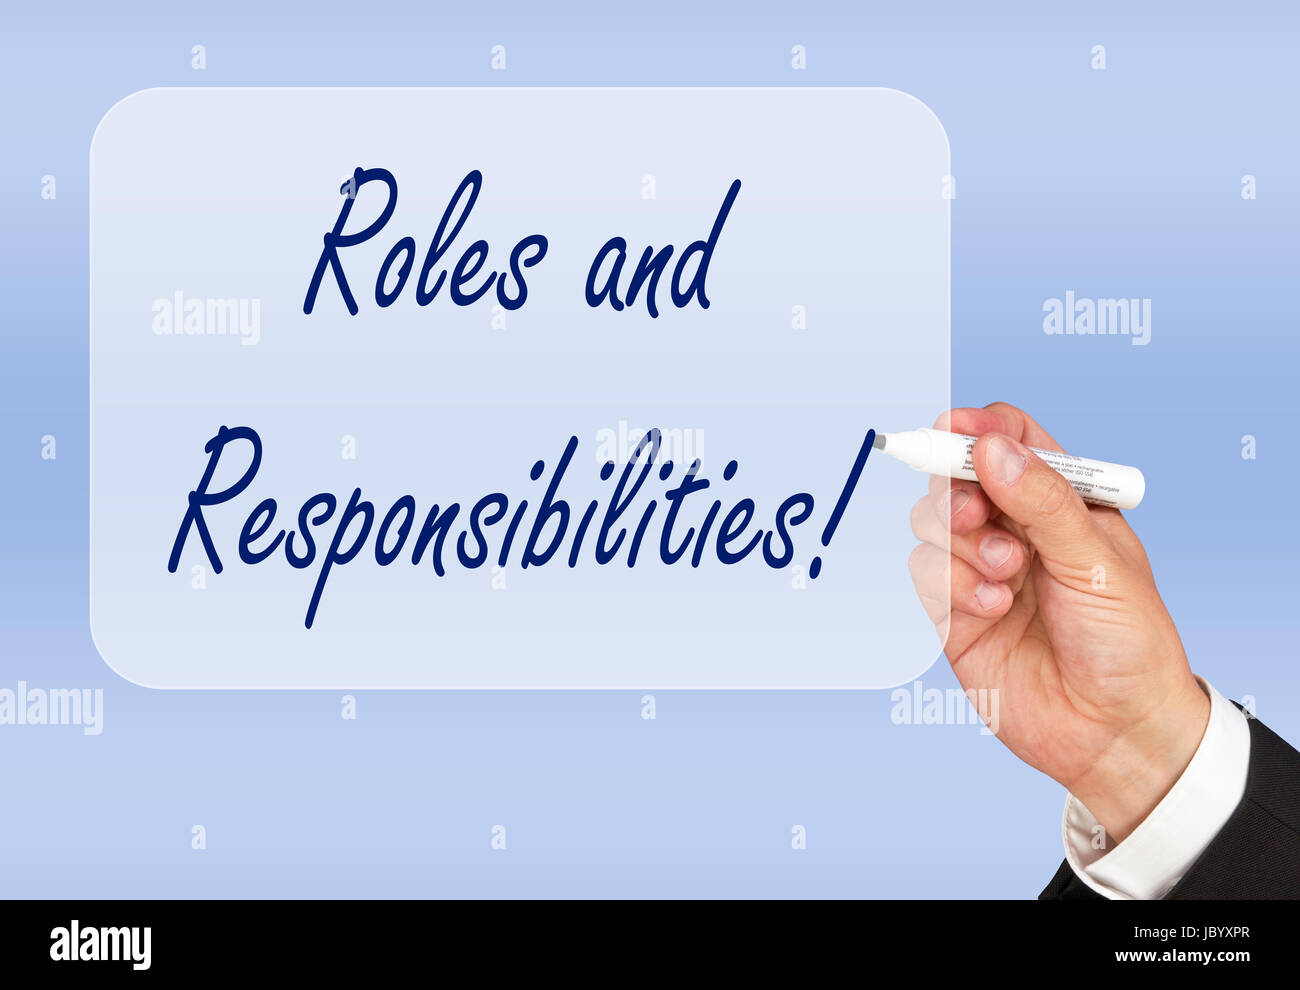 Roles and Responsibilities - Stock Image